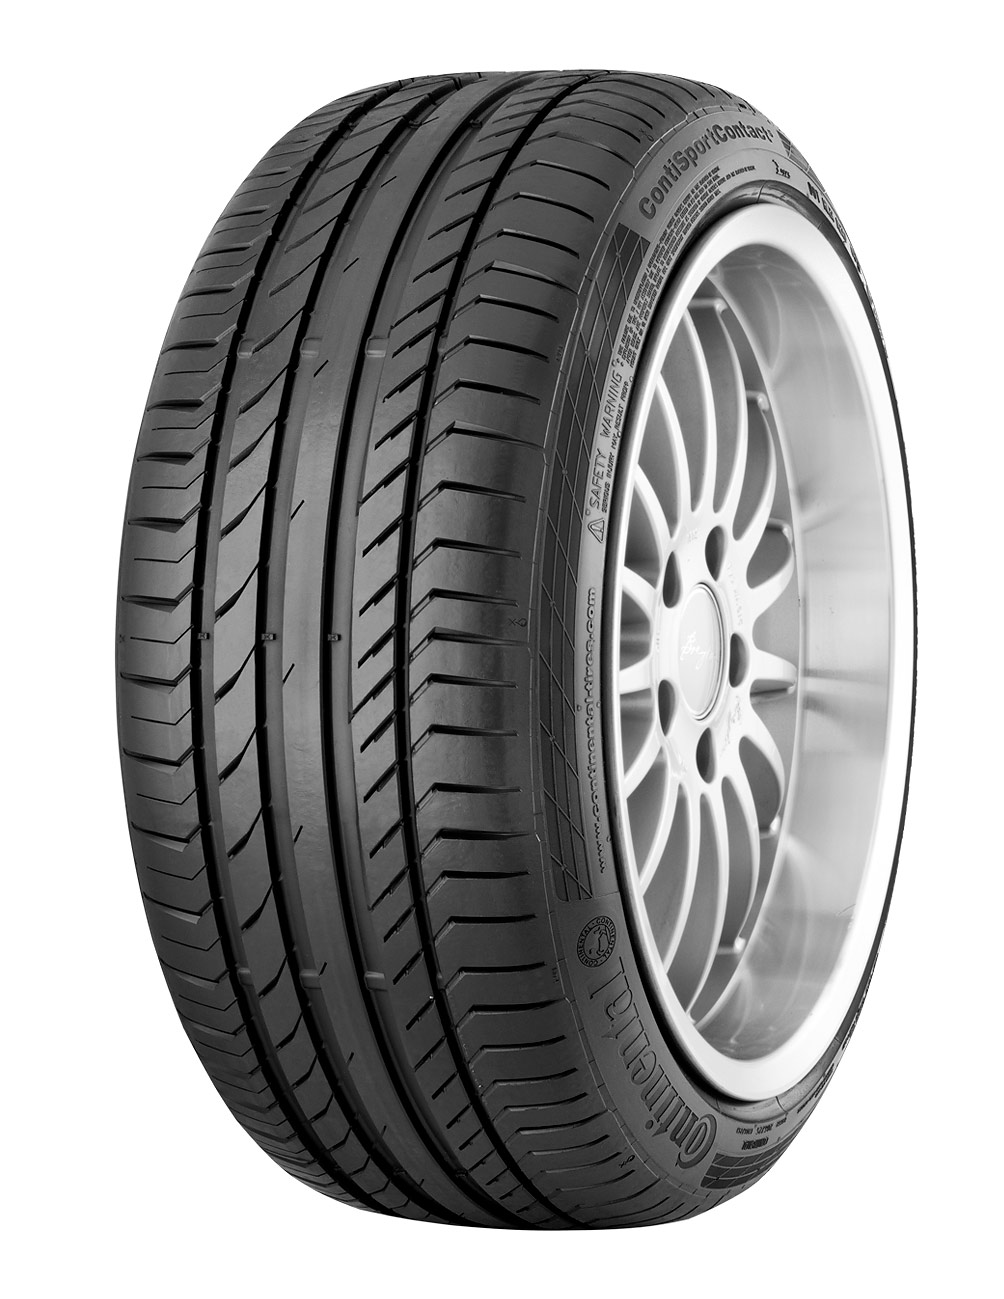 CONTINENTAL CONTISPORT CONTACT 5 SUV 265/50R20 ปี15 ซื้อ2แถม2